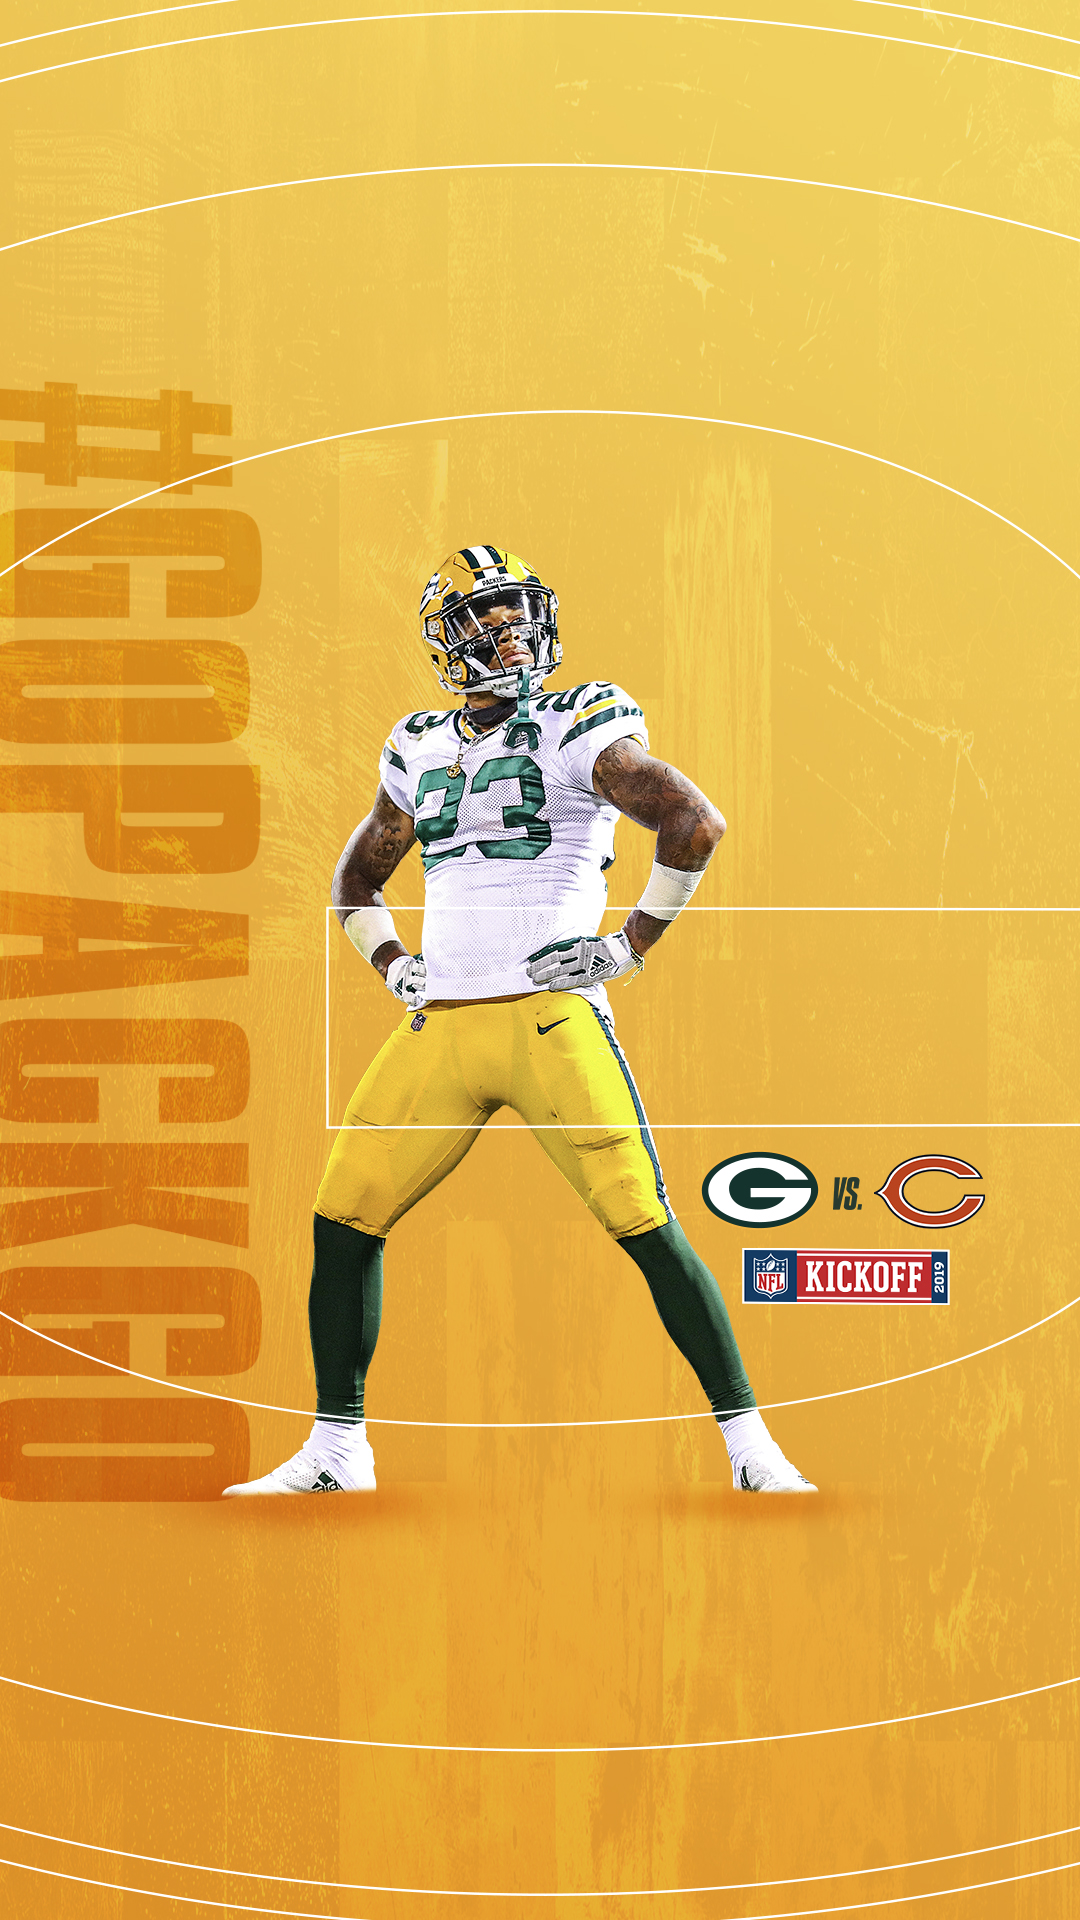 Aaron Rodgers Iphone Wallpaper Packers Mobile Wallpapers Green Bay Packers Packers Com